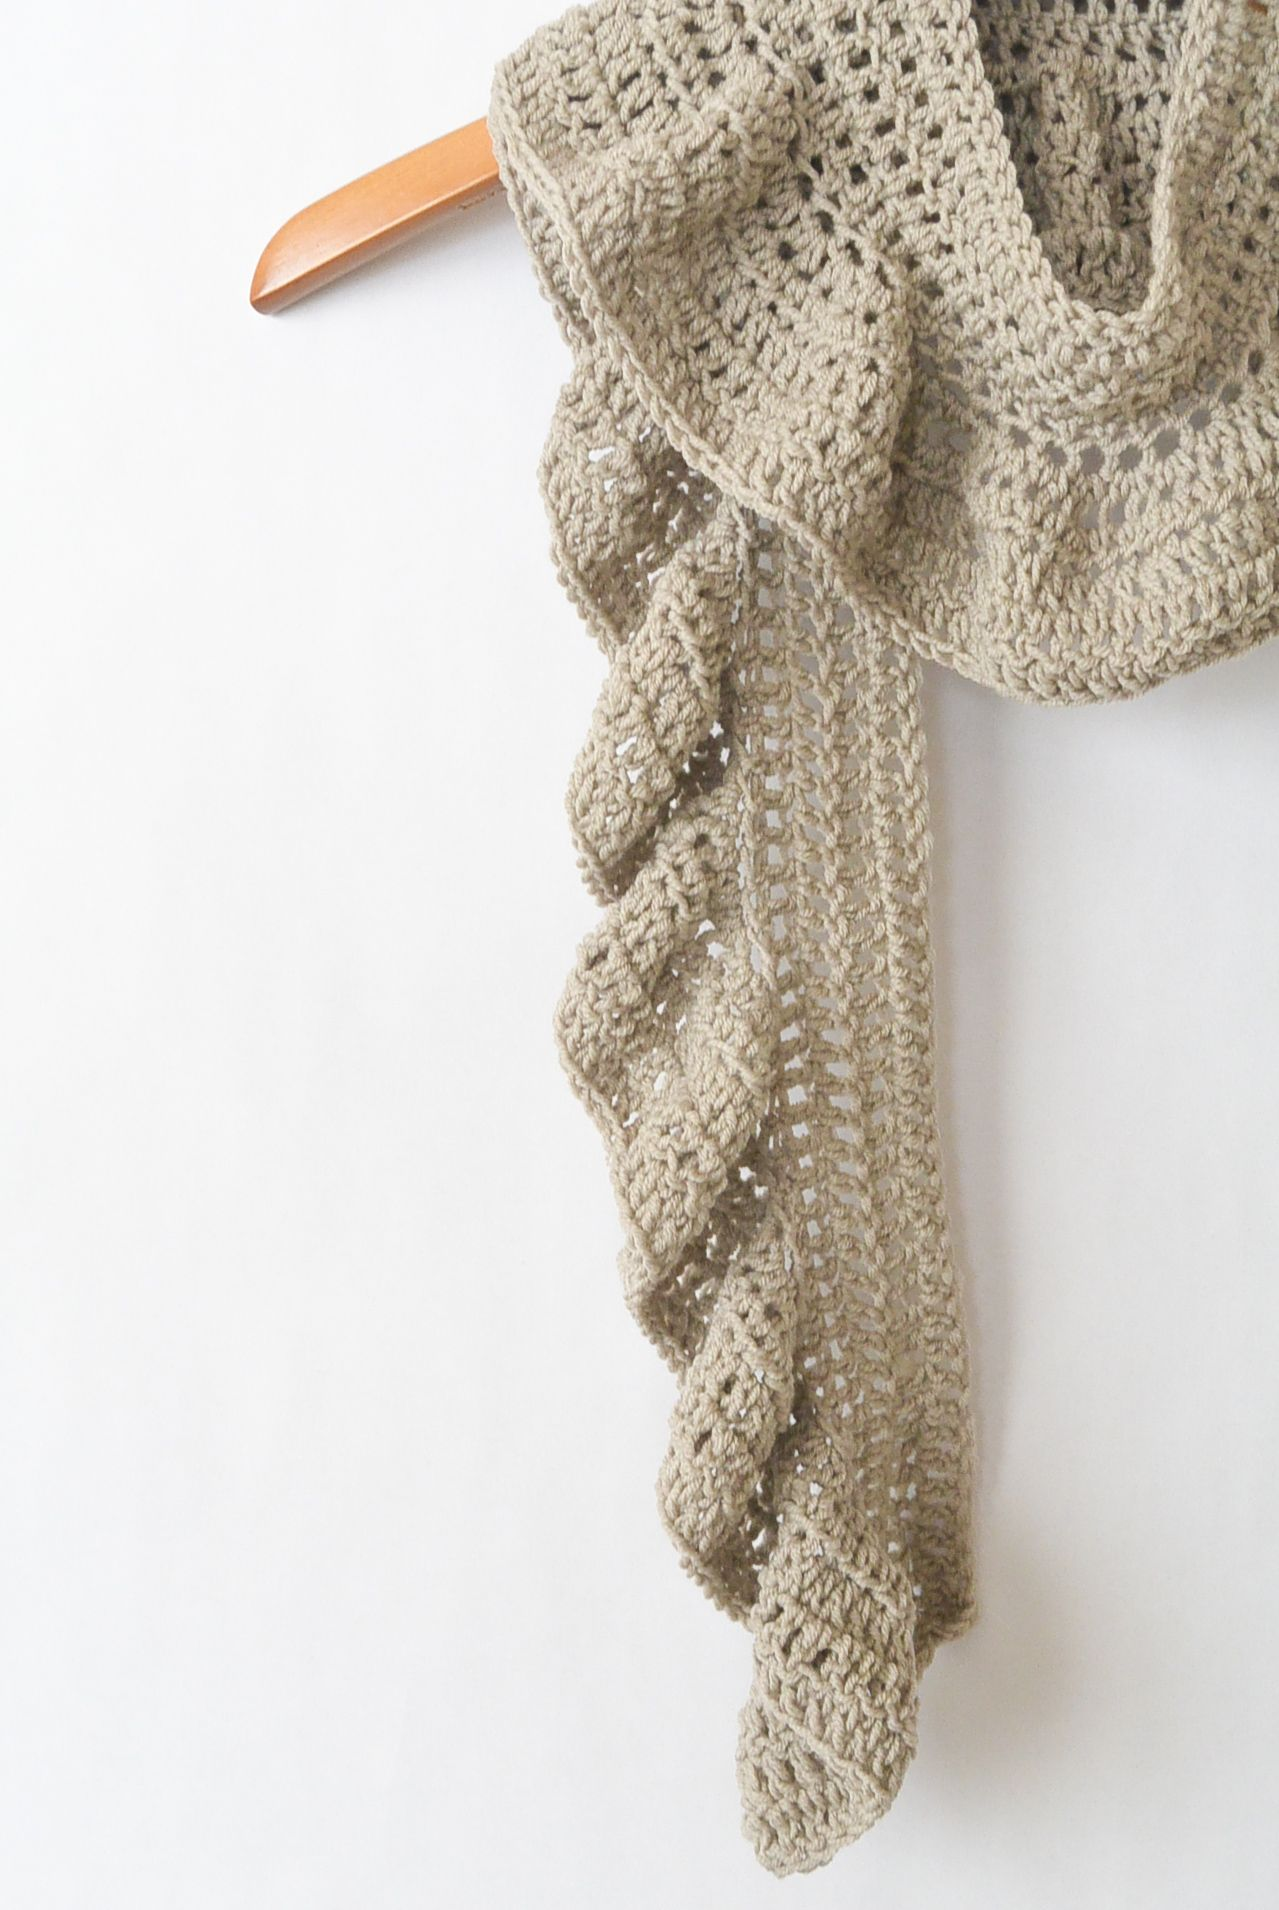 Merino Crocheted Ruffle Scarf Pattern in 2018 | Crochet scarfs ...